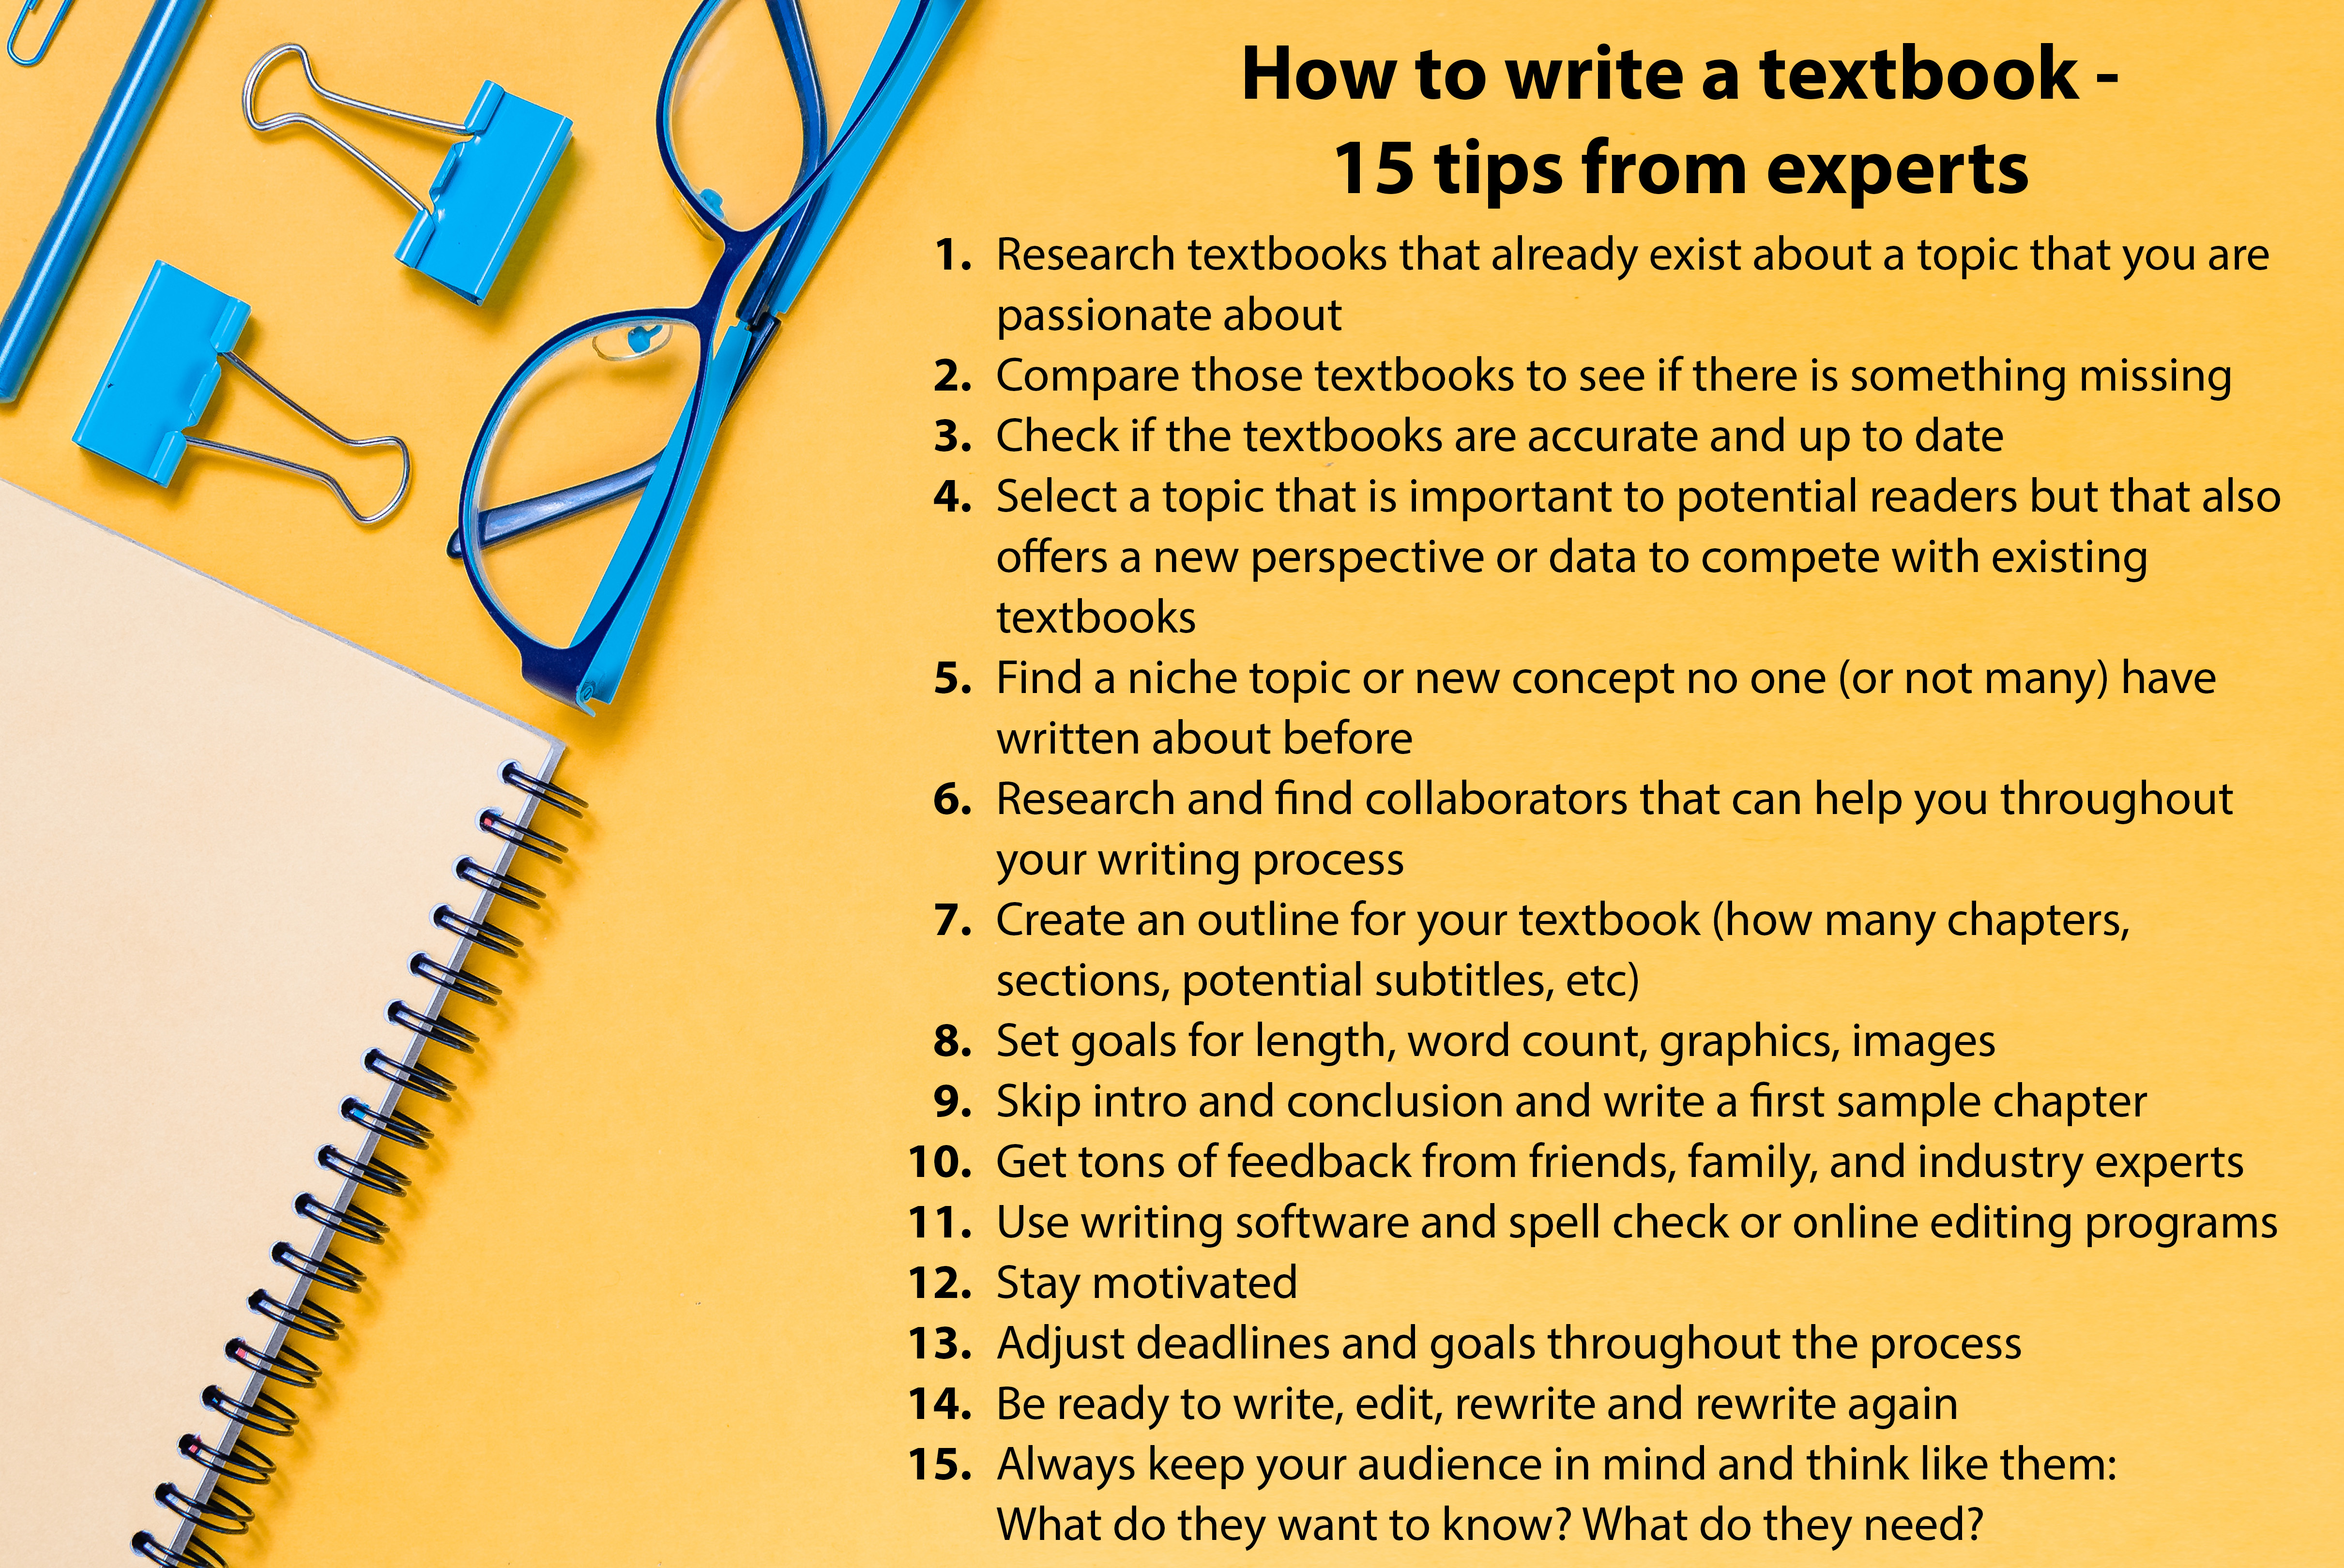 How to write a textbook - 15 Tips